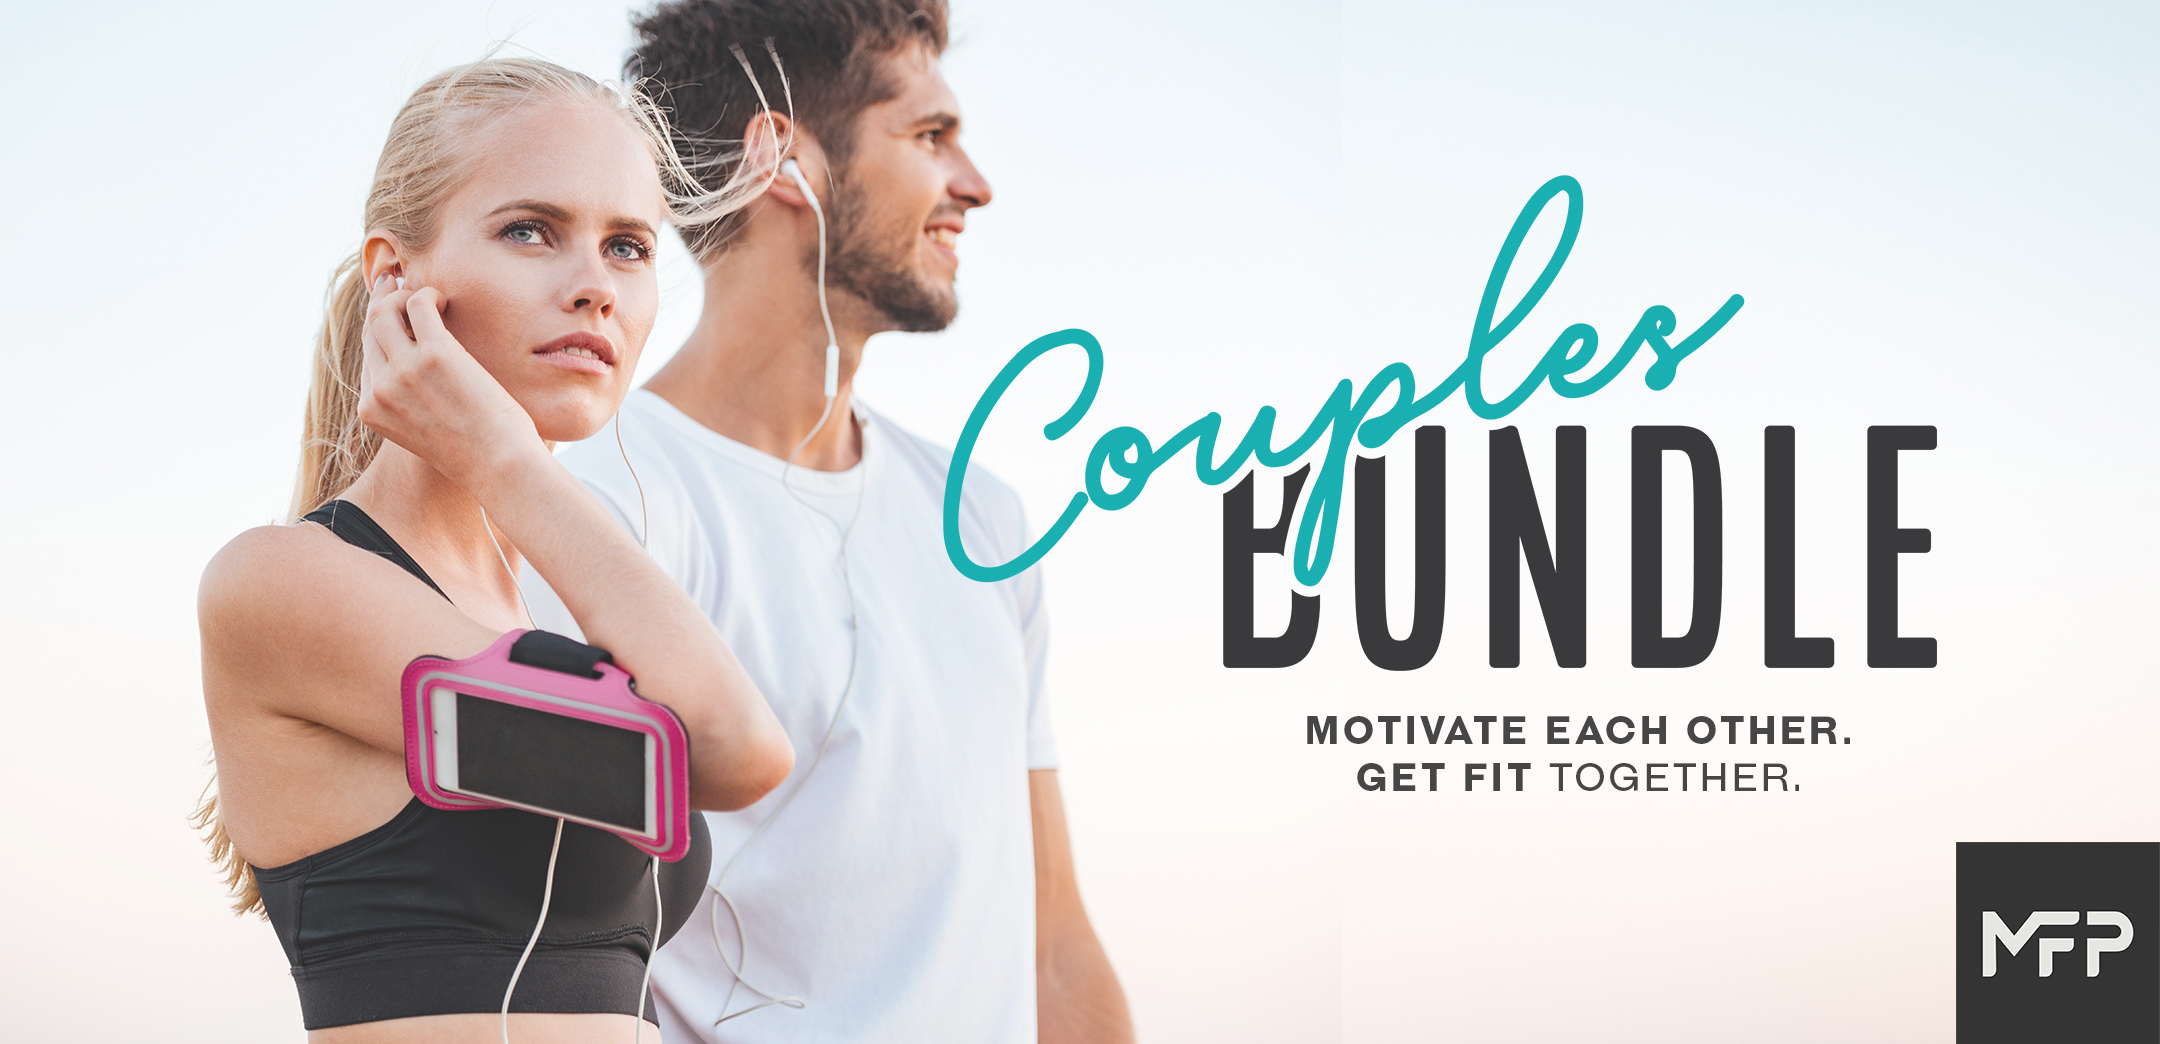 Couple Bundle Banner